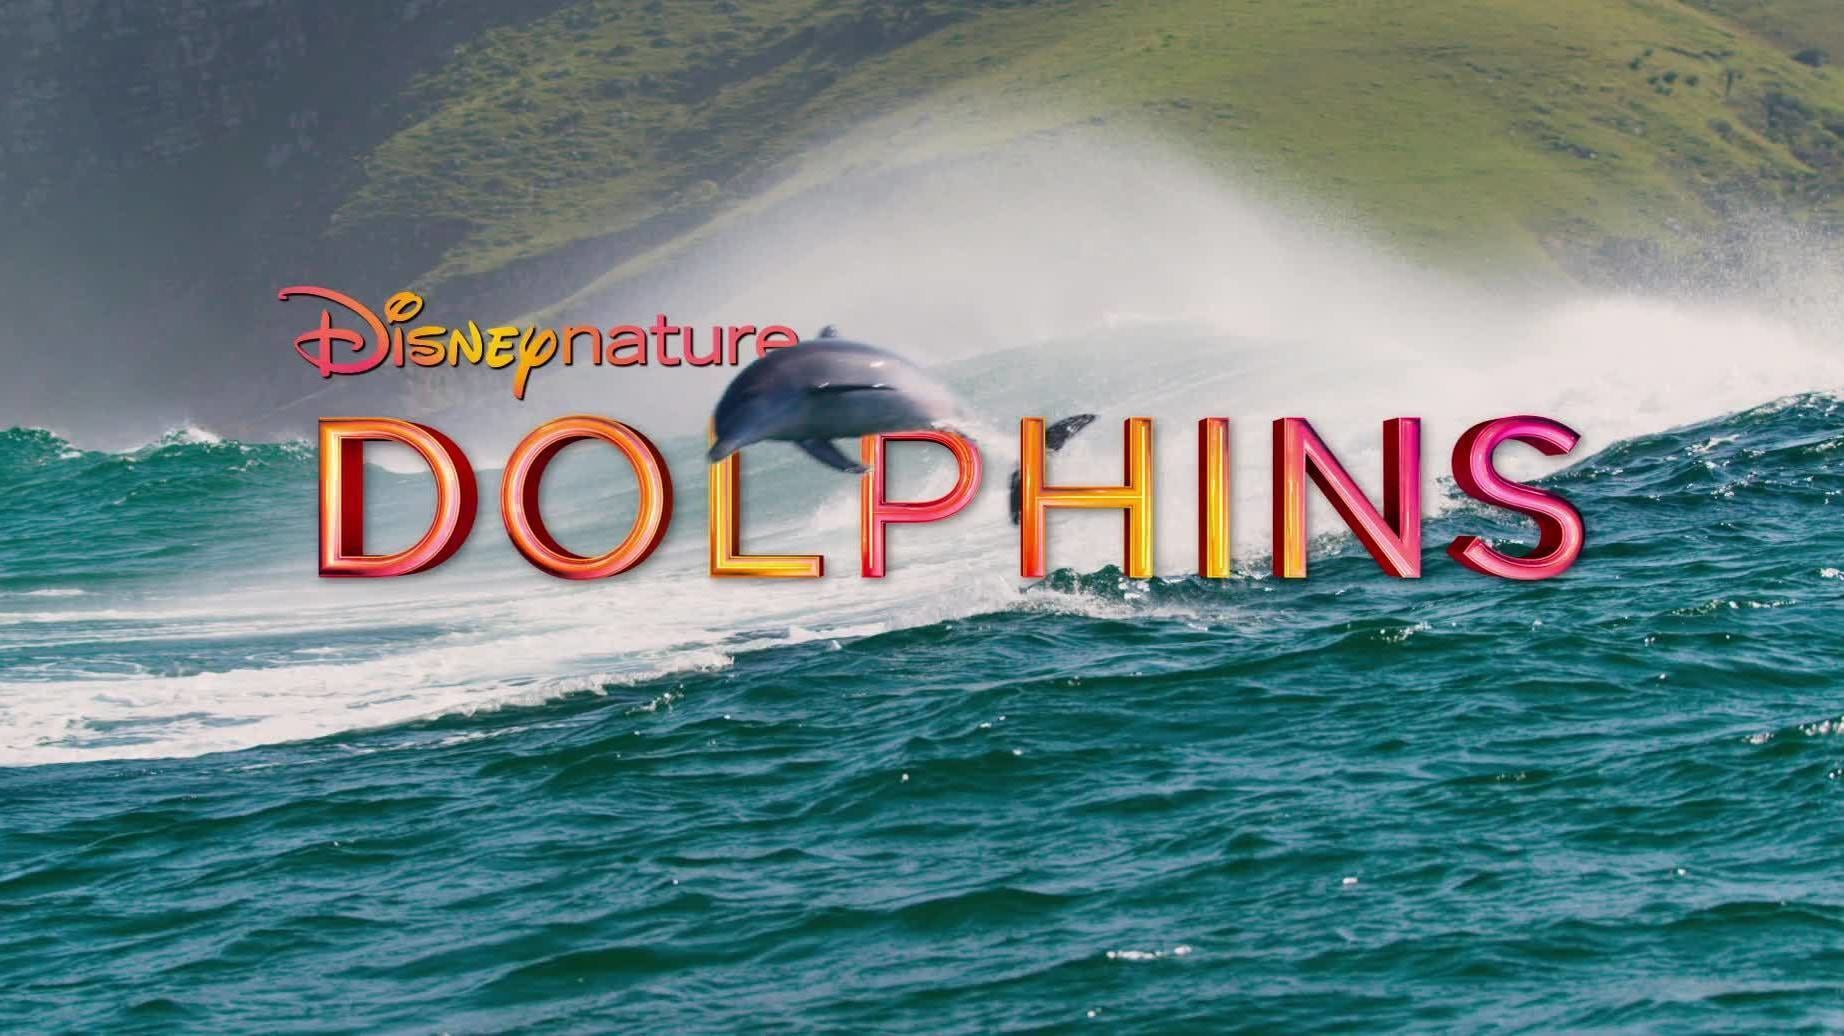 Disney Nature Dolphins Movie Teaser